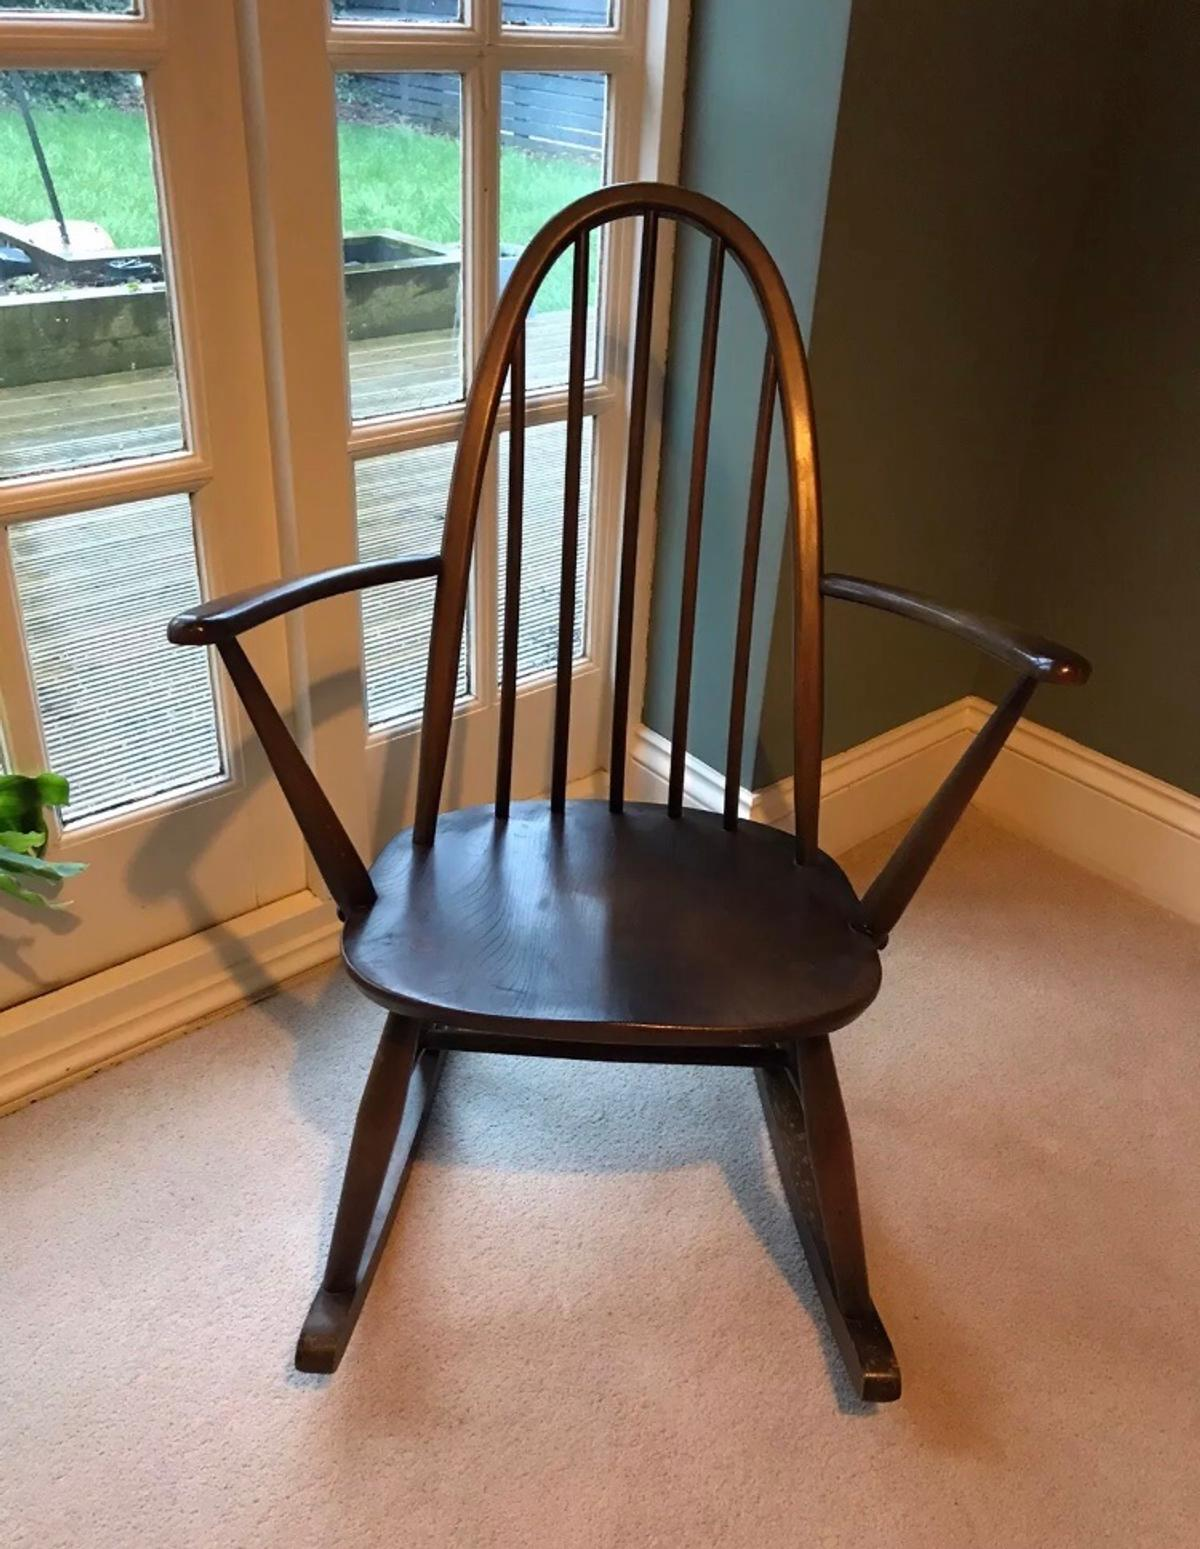 Beautiful Ercol Rocking Chair.  Comes with its original cushion  1960.  Model 2056.  Good condition although usual signs of wear due to its age as shown in the photos  Please note it's dimensions:  85cm high (floor to top of back)  62cm wide (from arm to arm)  71cm long (from front to back/rocking legs)  Many thanks